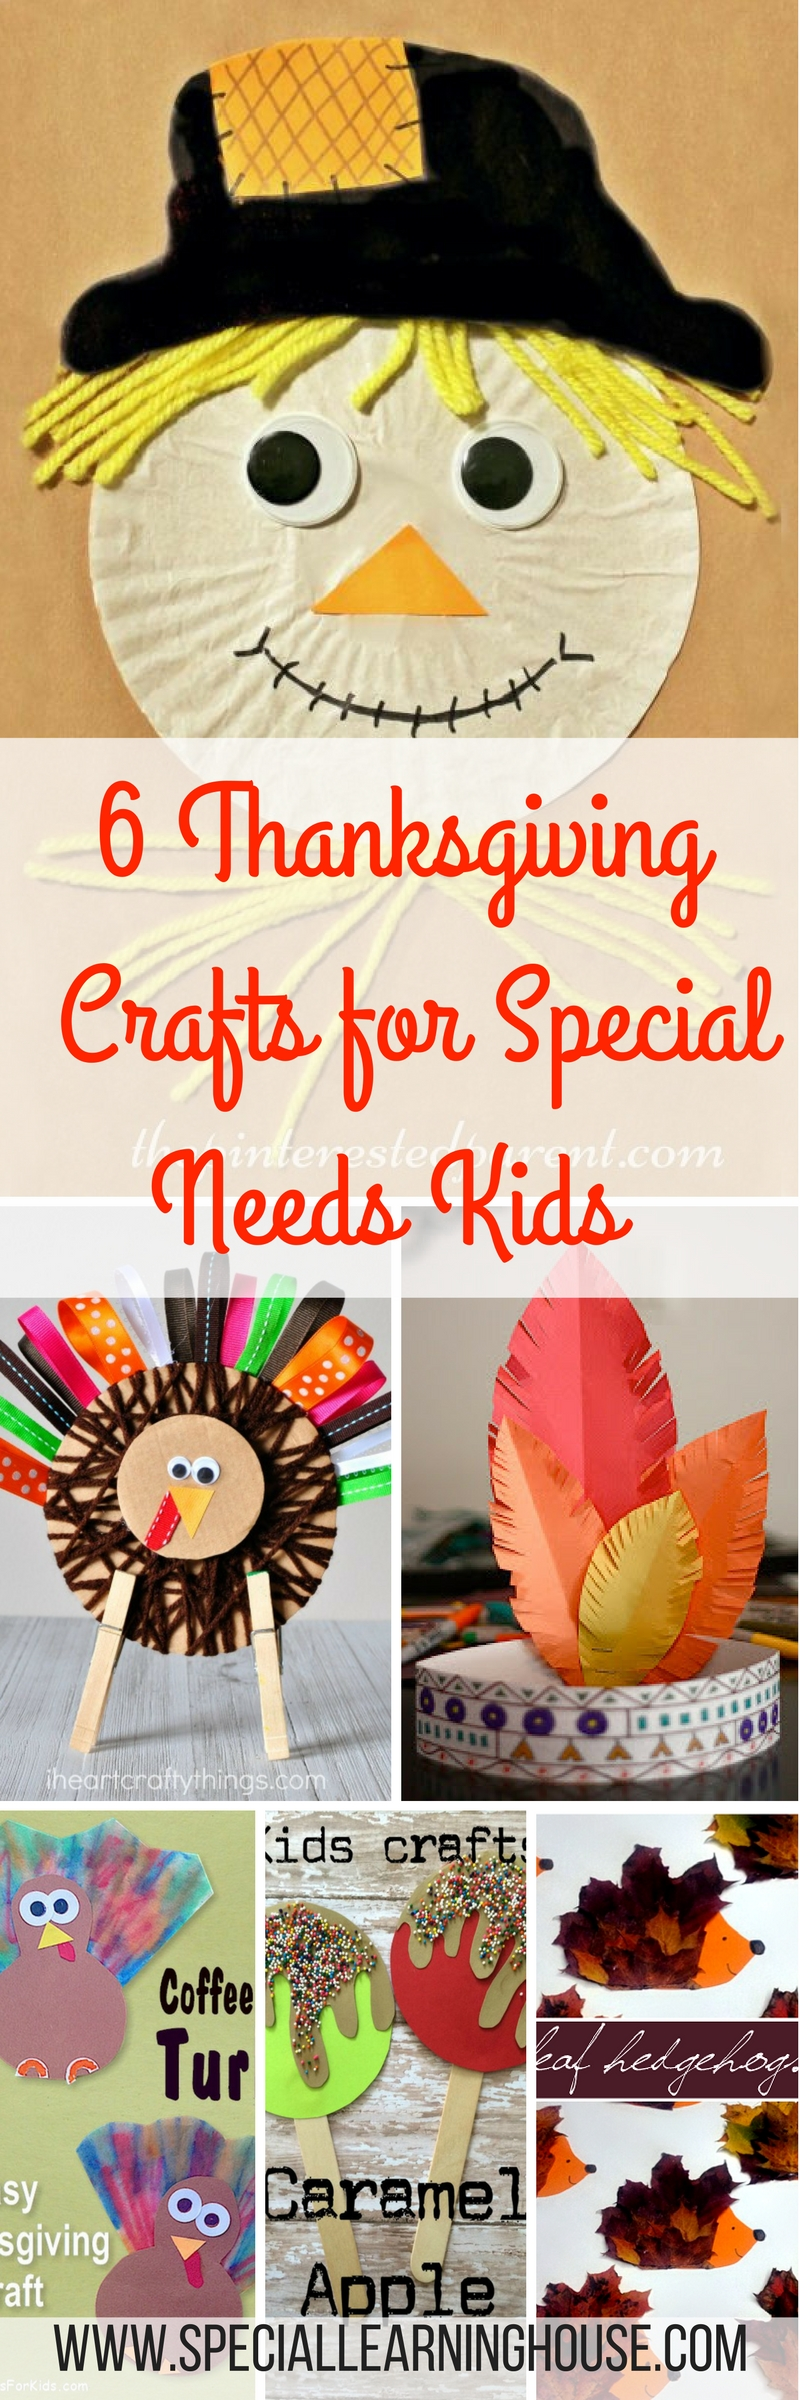 6 Thanksgiving Kids Crafts. Special Learning House. www.speciallearninghouse.com.